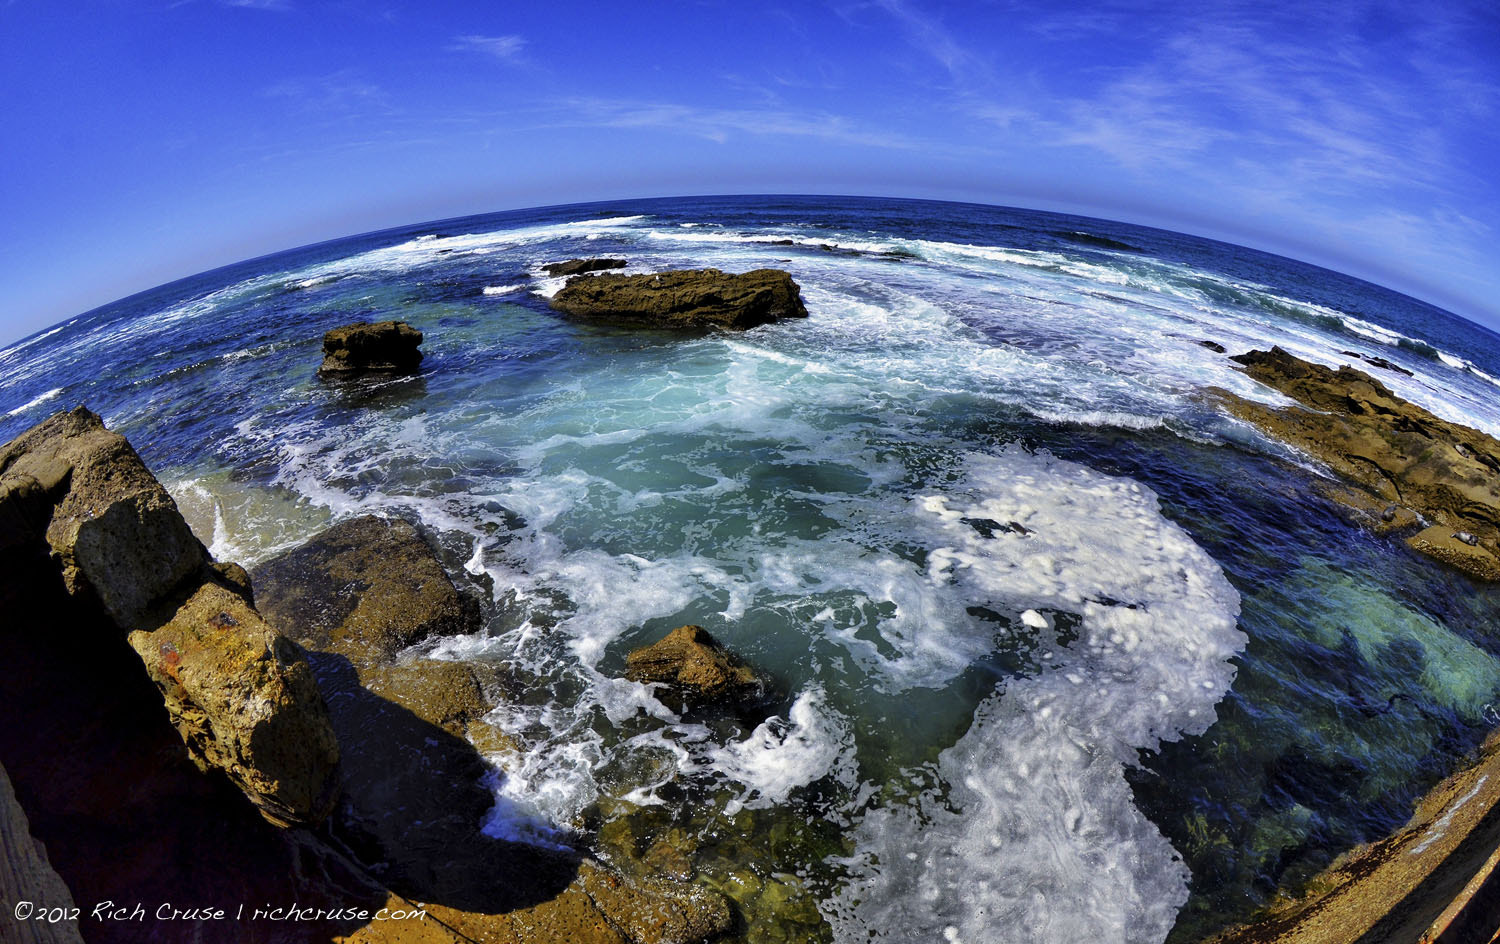 Photograph La Jolla, CA March 20, 2012 by Rich Cruse on 500px